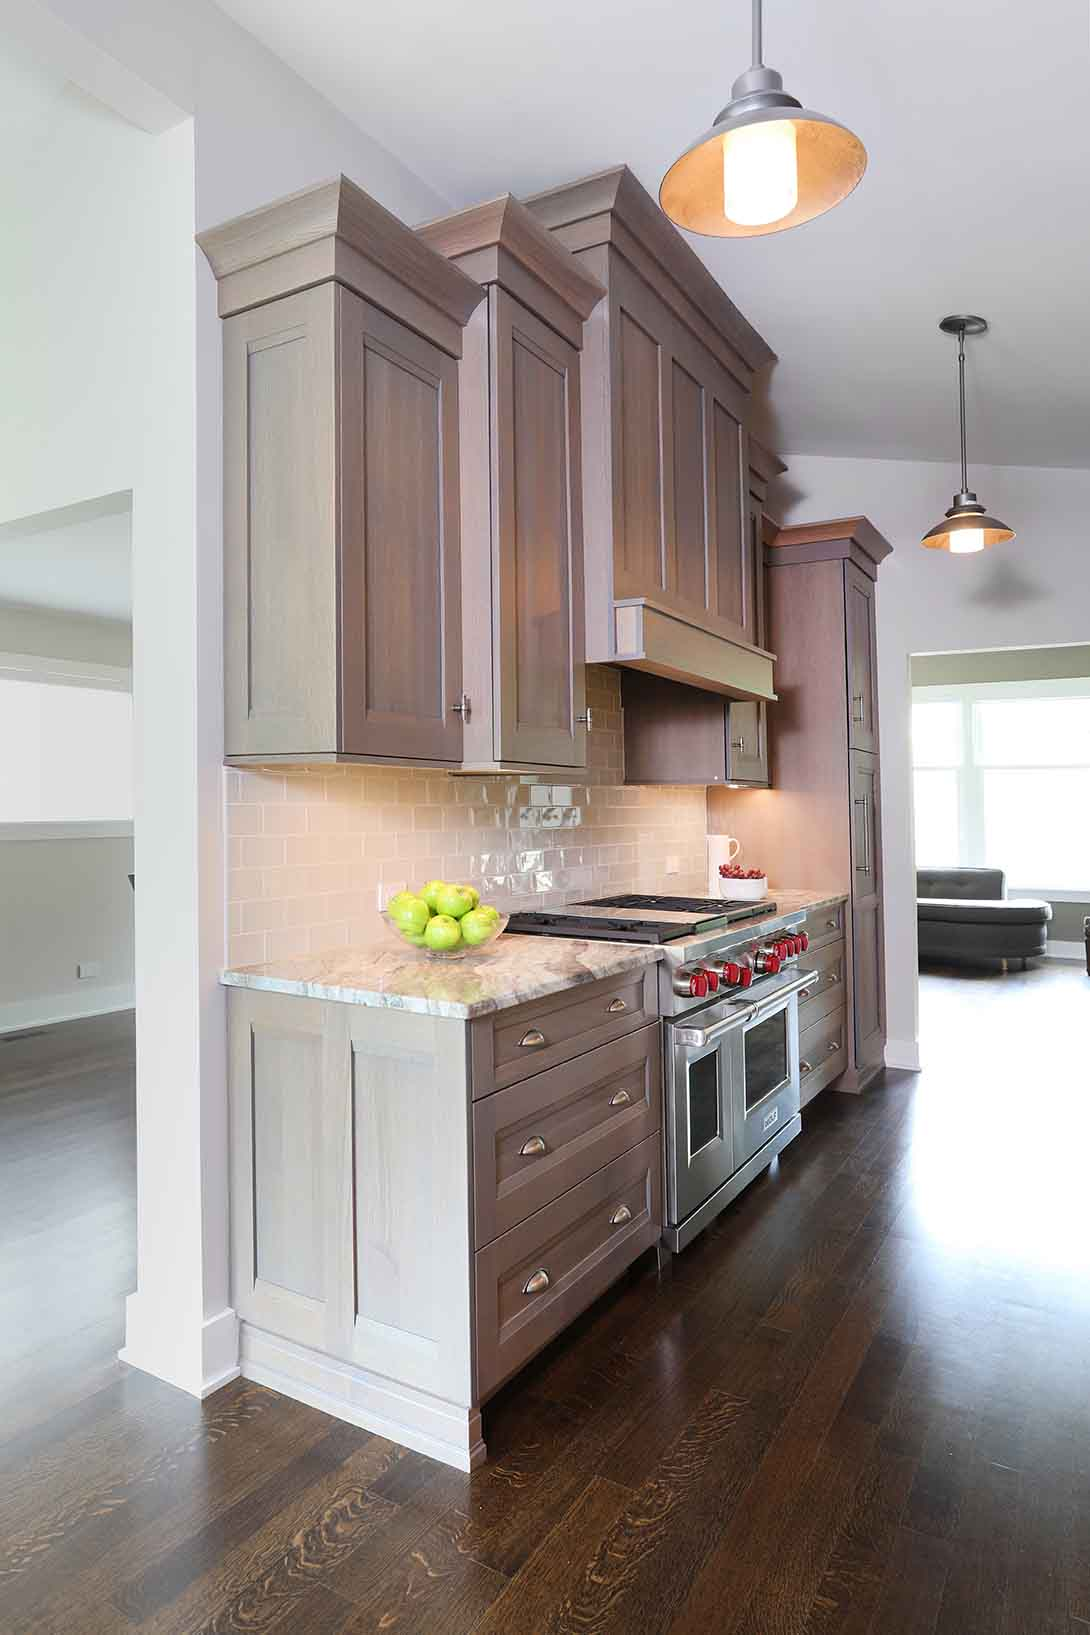 Light Gray Stain On Wood Cabinets In Galley Kitchen Normandy Remodeling